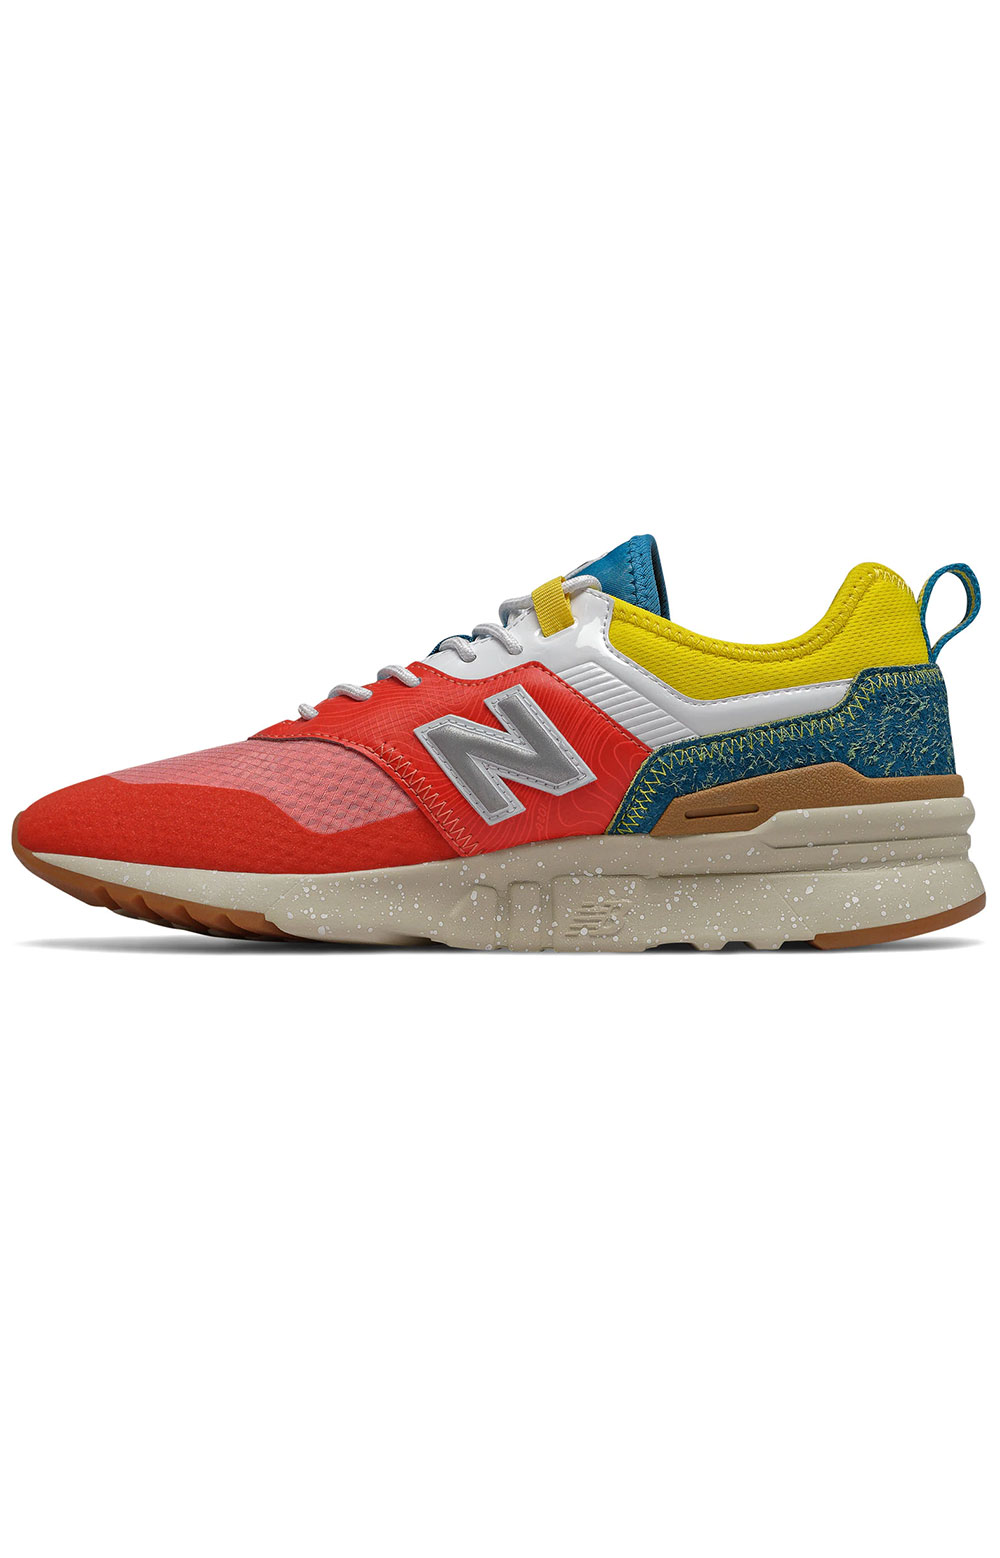 (CMT997HG) 997H Spring Hike Trail Shoes - Neo Flame/Classic Blue/Yellow 2